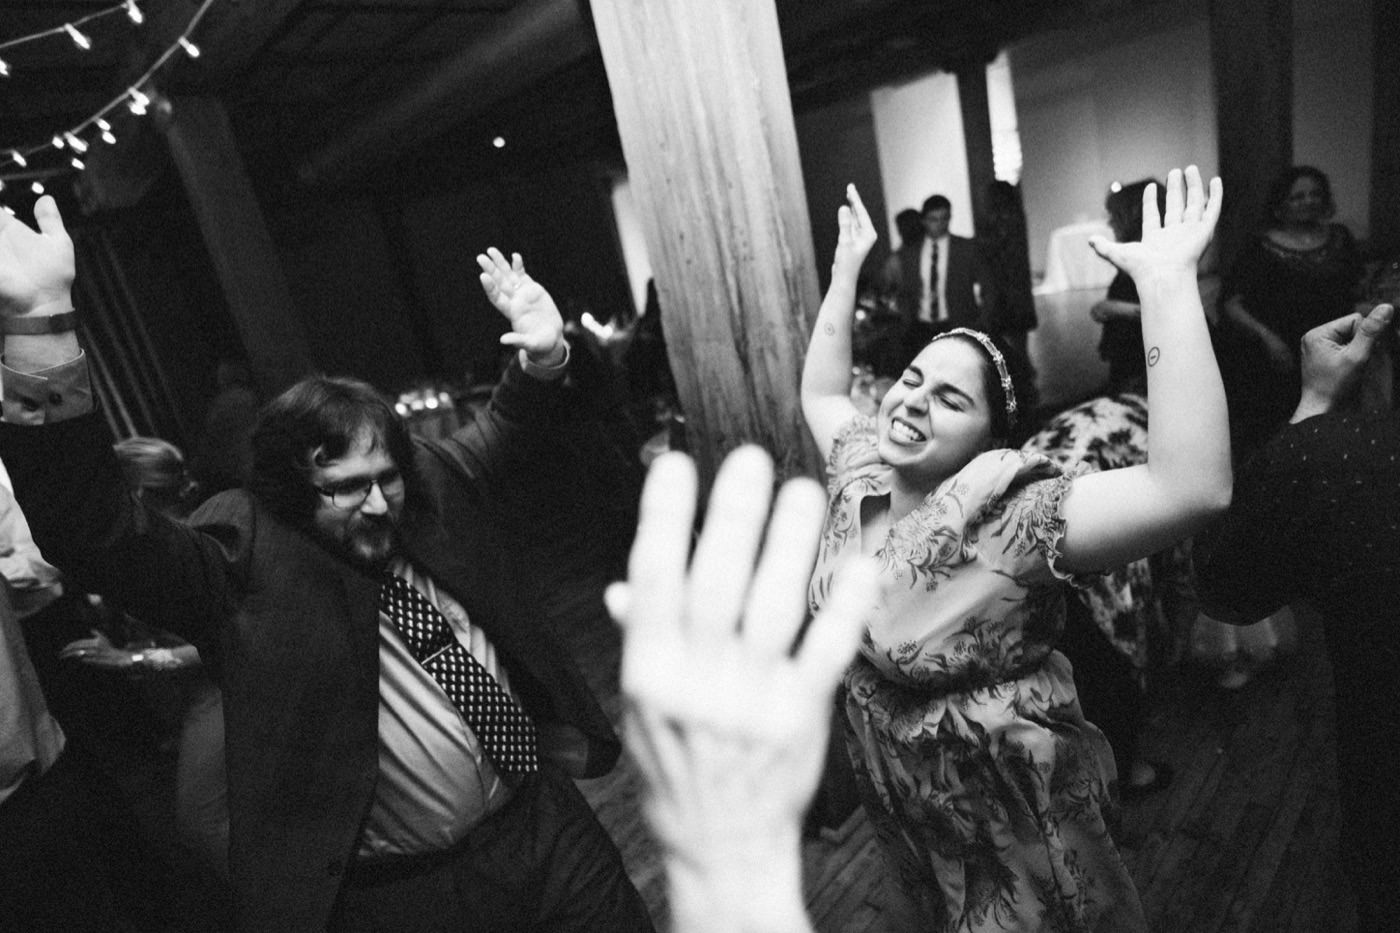 67_Lucy-Daniel-Chicago-Wedding-By-Sarah-Katherine-Davis-Photography0967bw.jpg